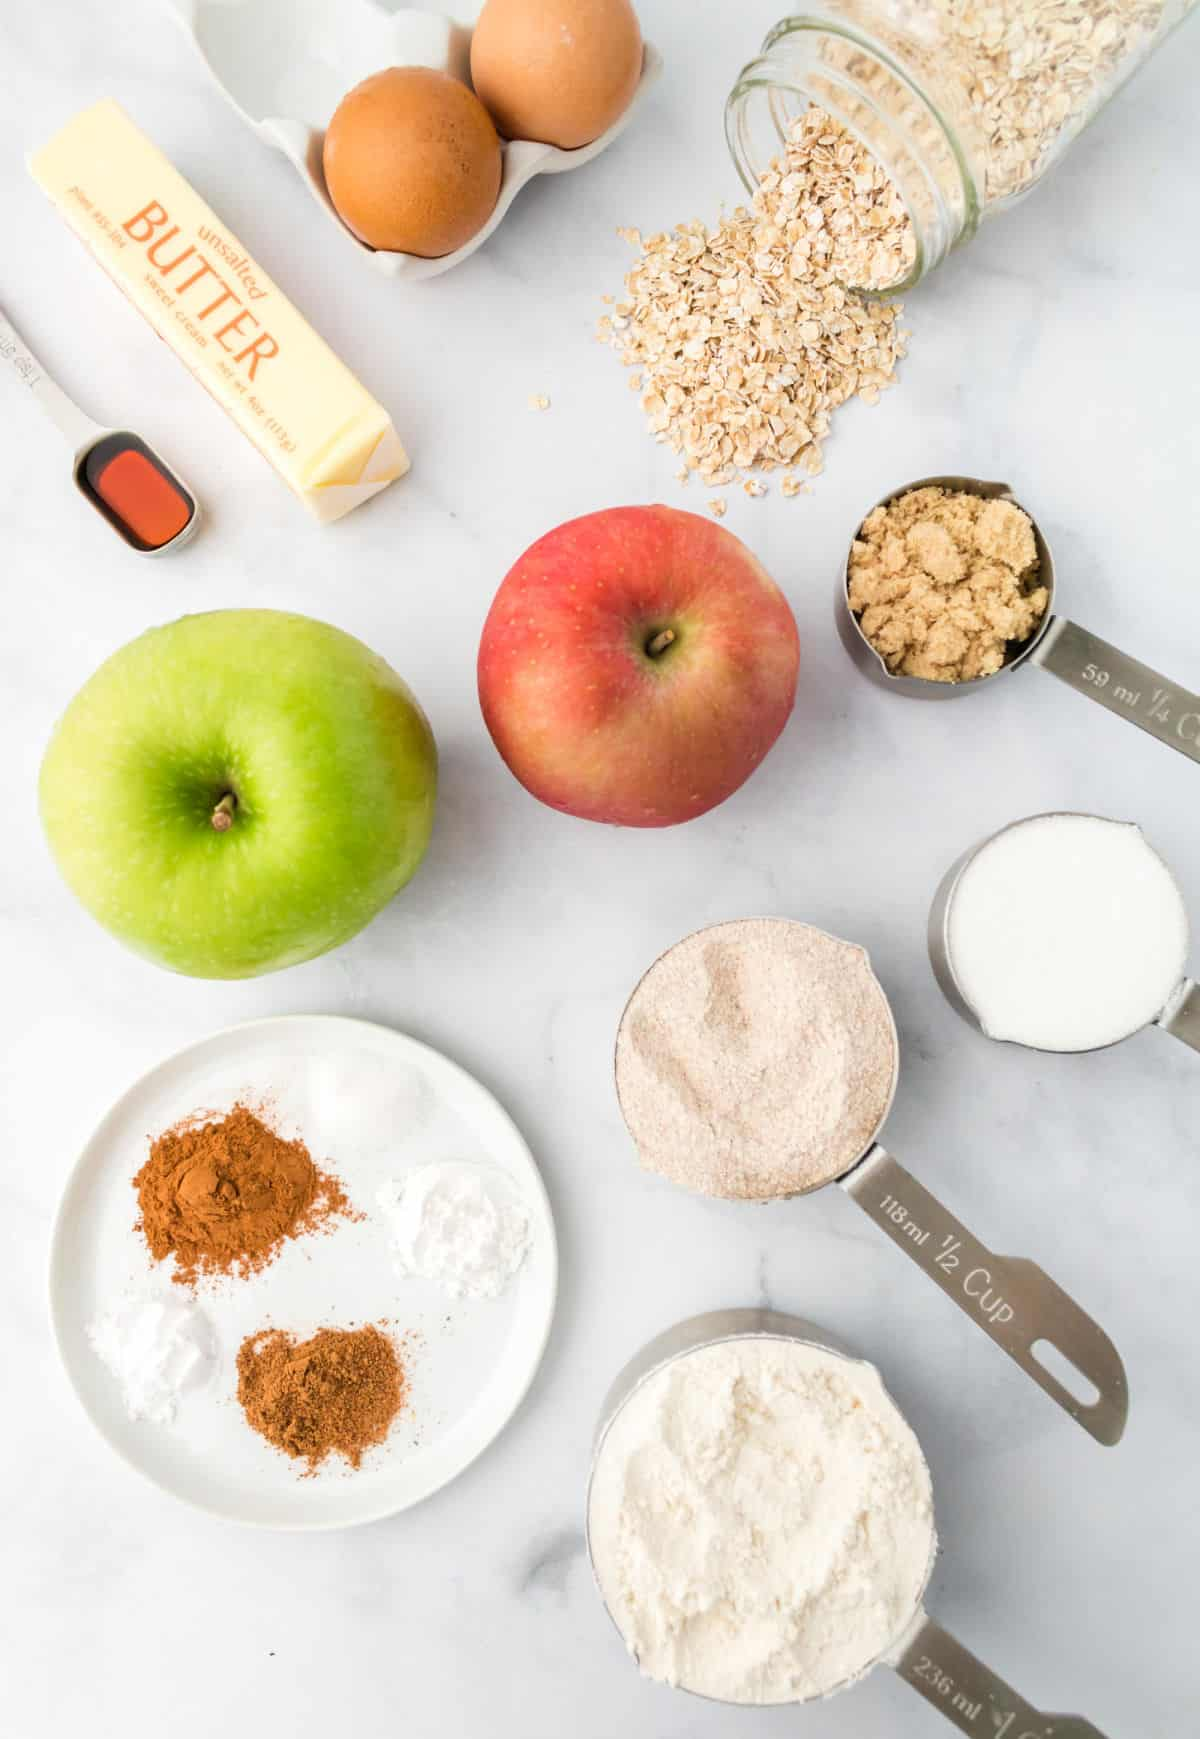 A photo of all the ingredients needed for this recipe.